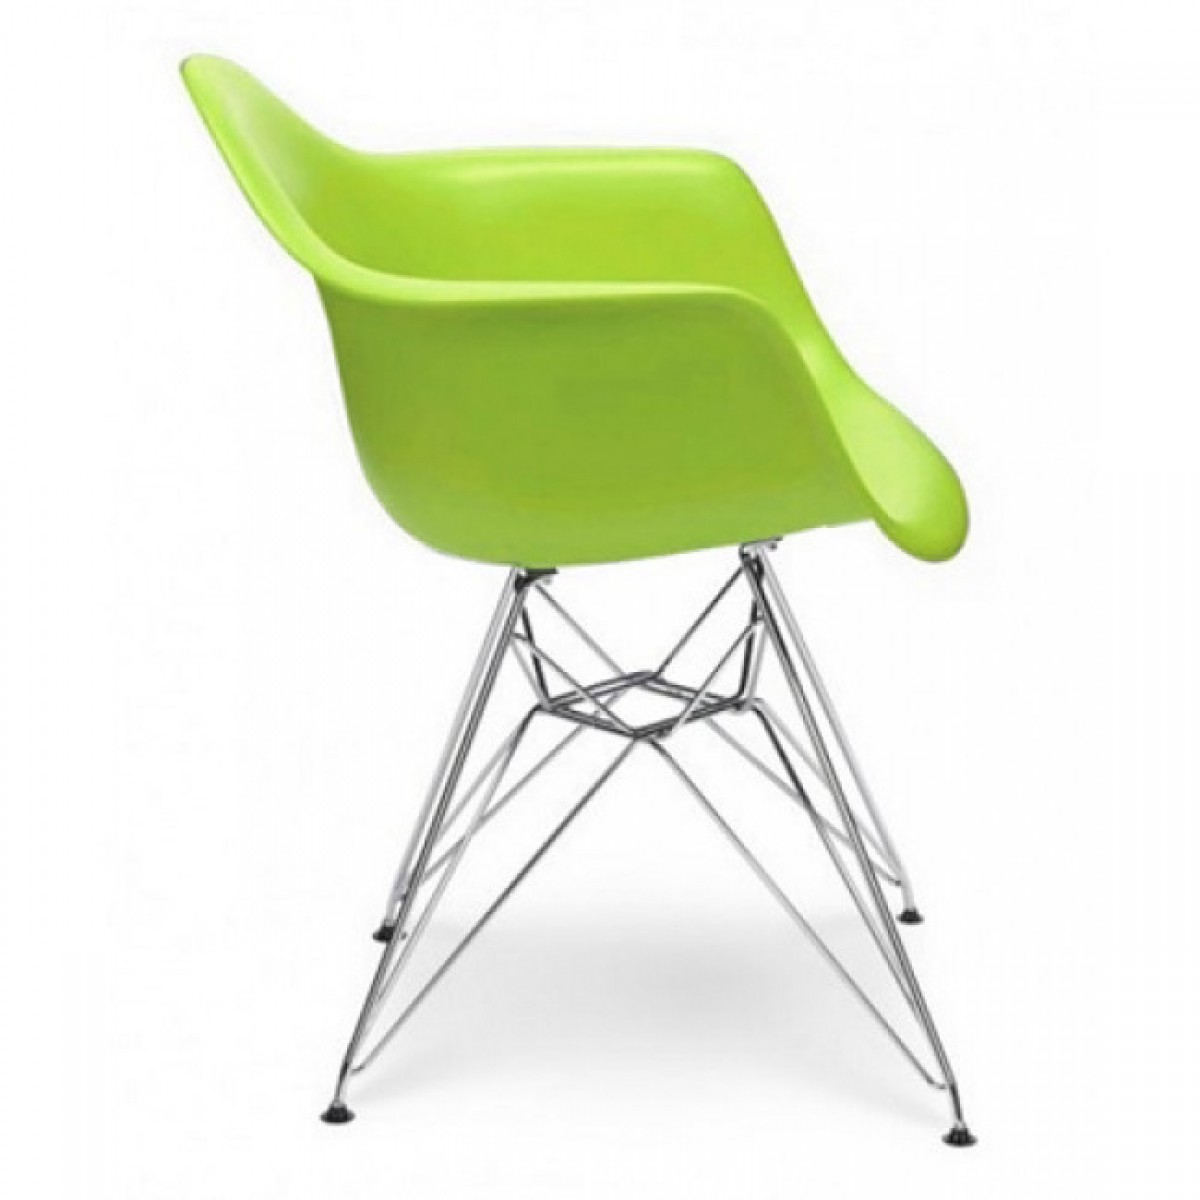 Eames style dar molded lime green plastic dining armchair for Chaise eames eiffel